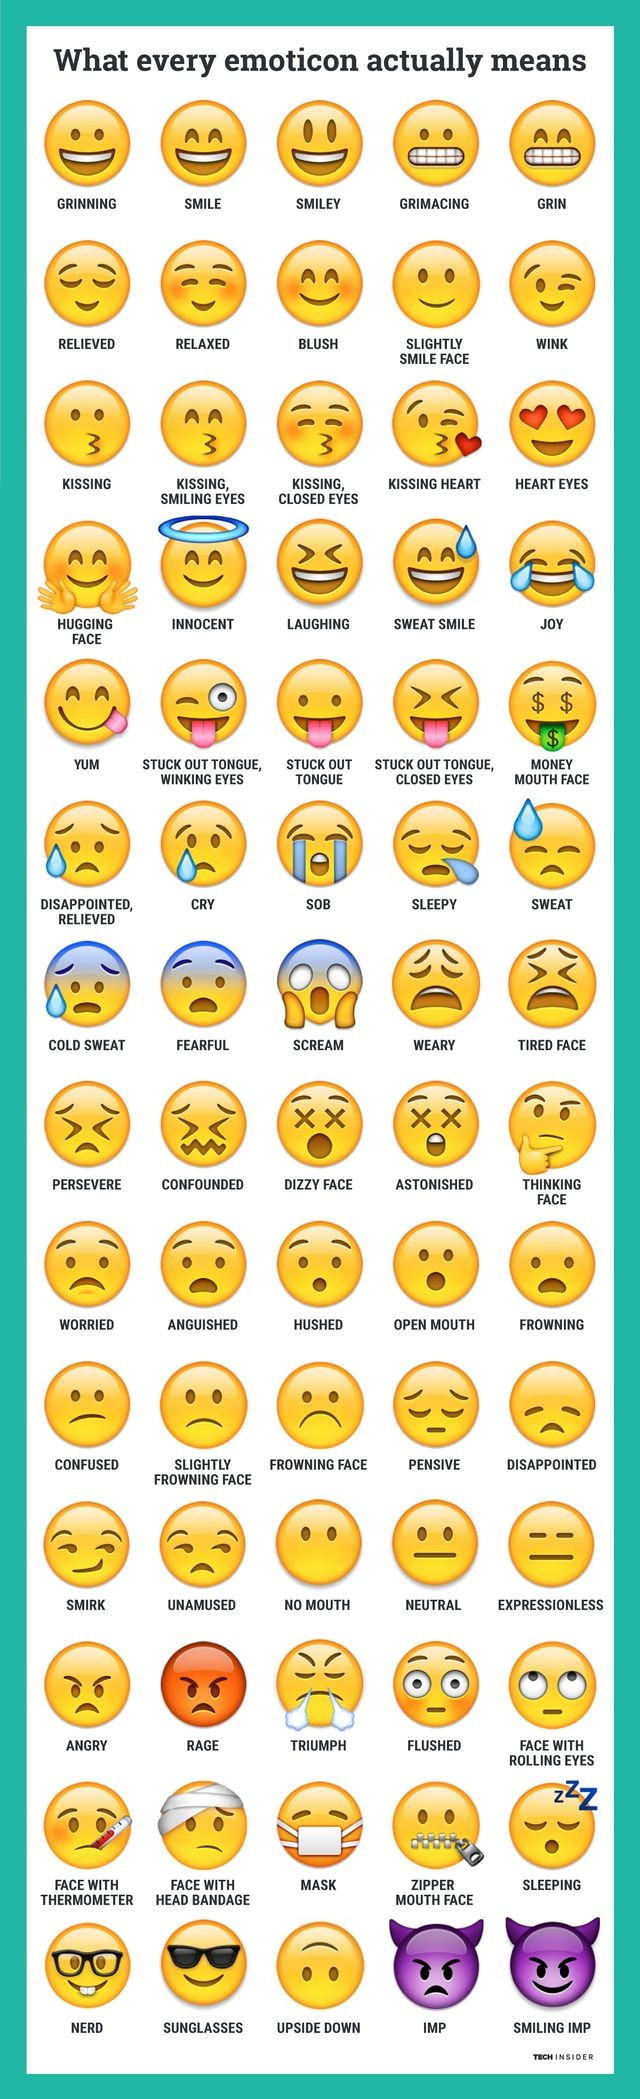 EMOJI DEFINED - Emoji People and Smileys Meanings